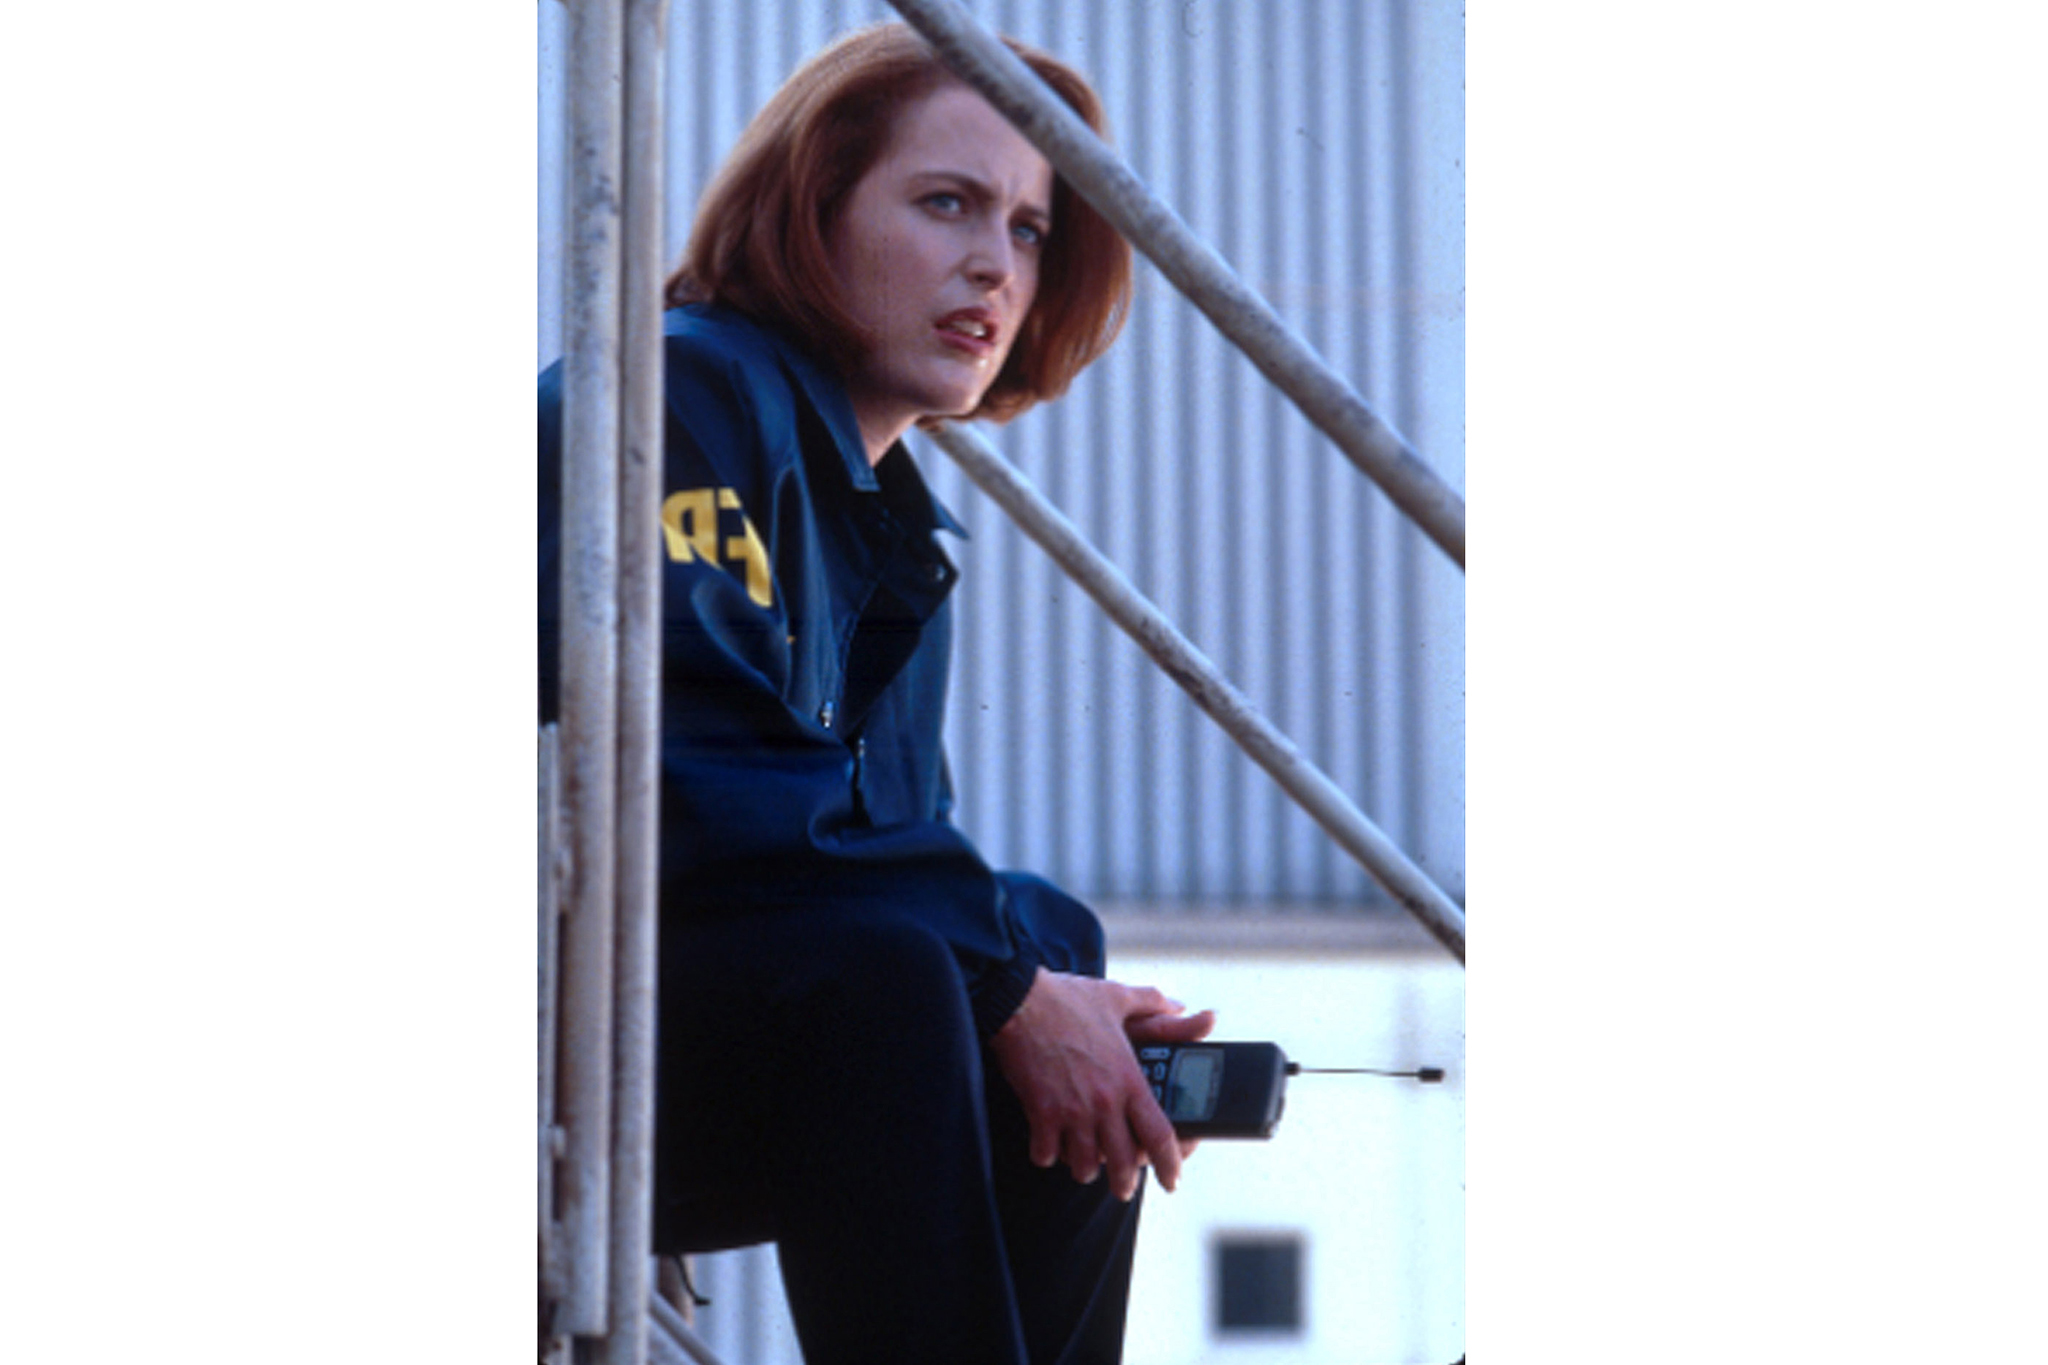 X-Files - The Movie Starring Gillian Anderson